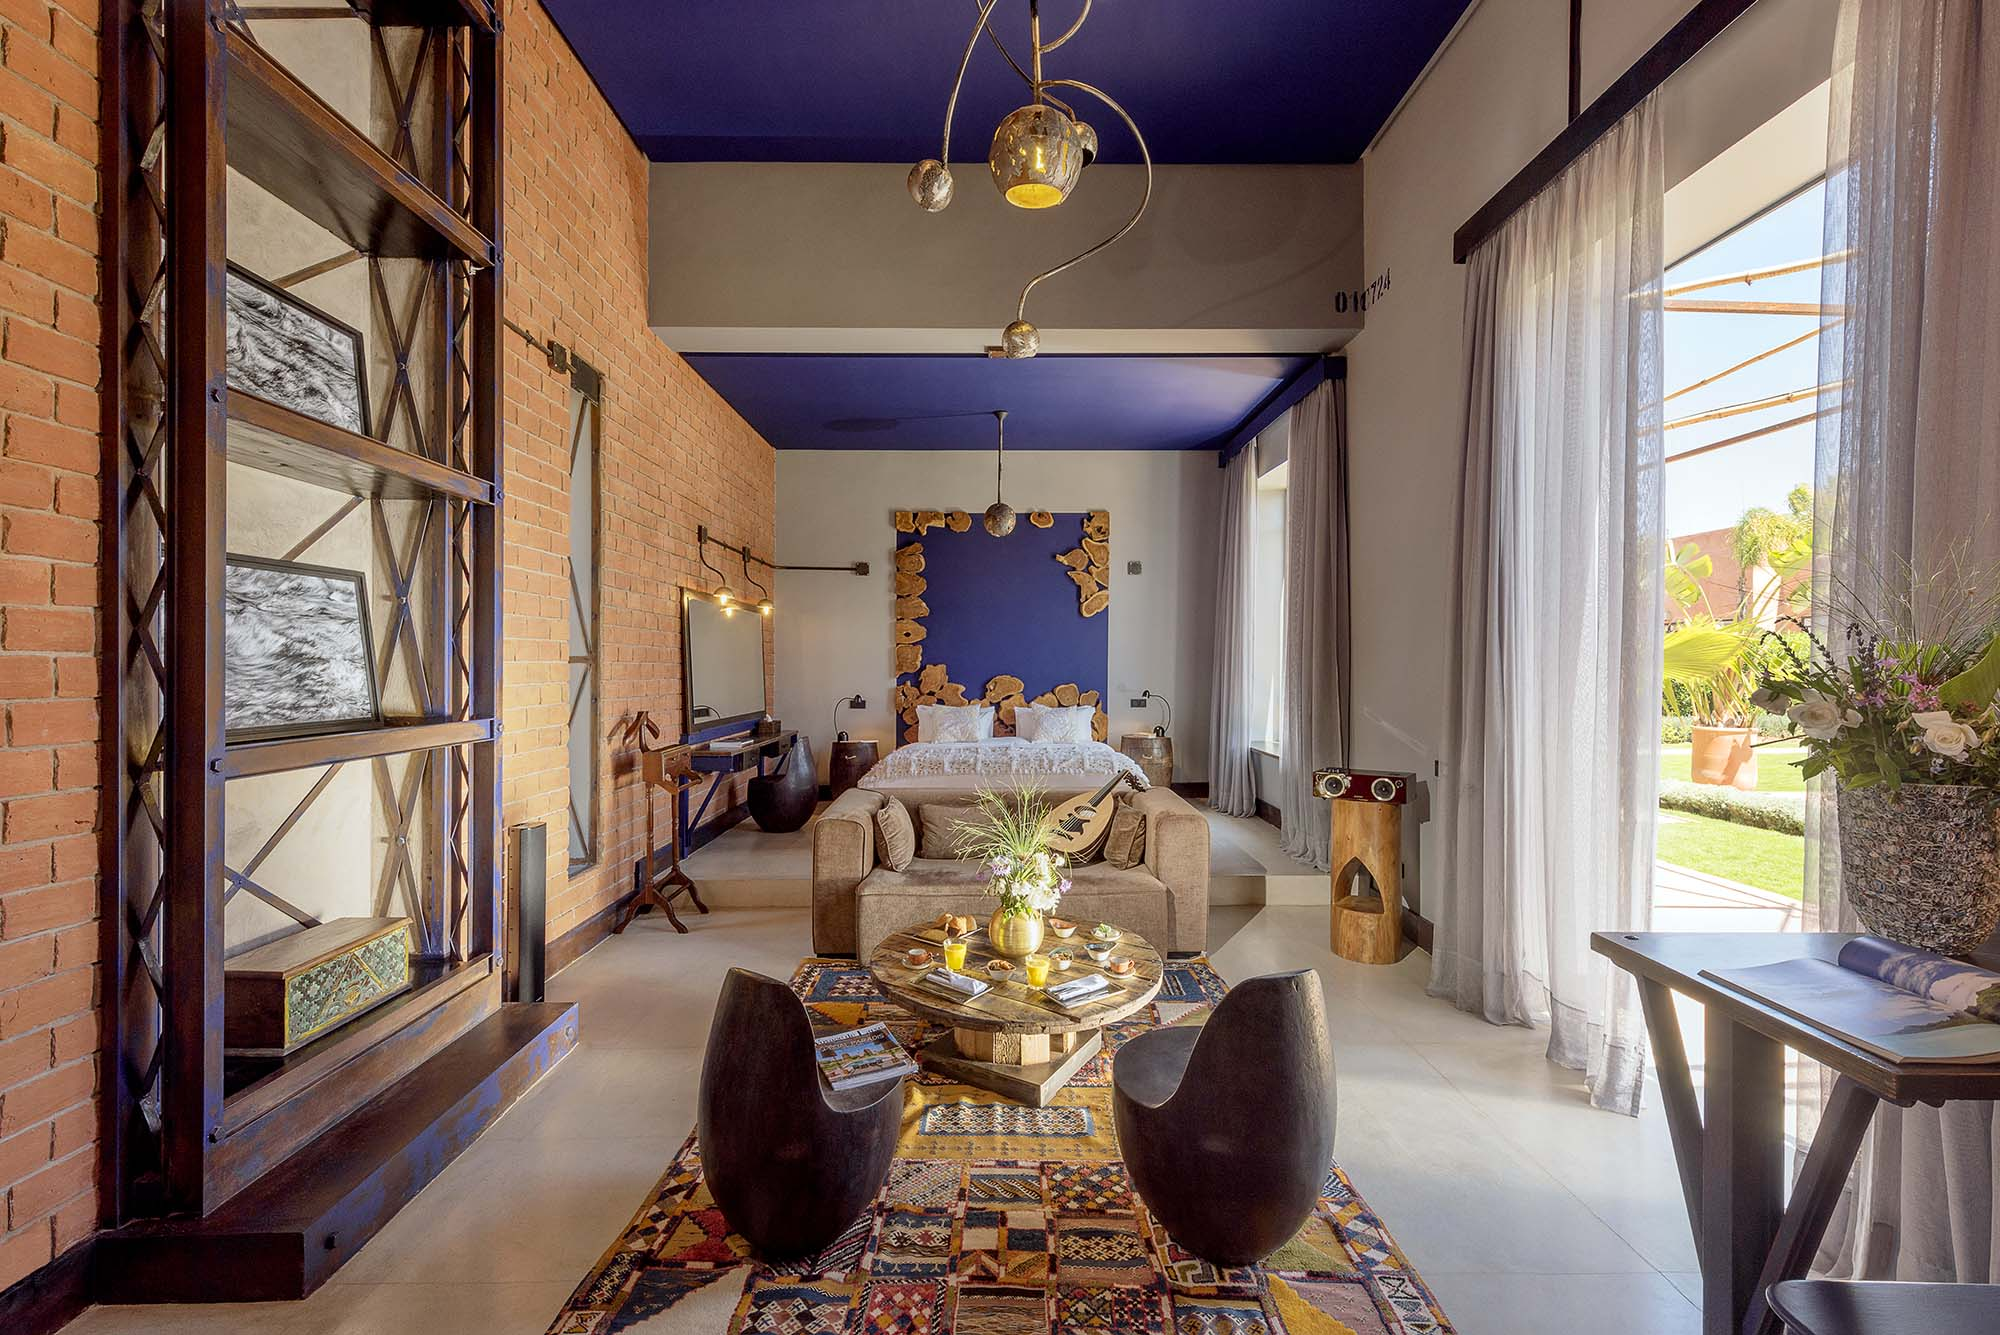 https://www.thesourcemarrakech.com/wp-content/uploads/2017/08/suite-privilege-Blue-Jeans-maison-hotes-The-Source-Marrakech.jpg